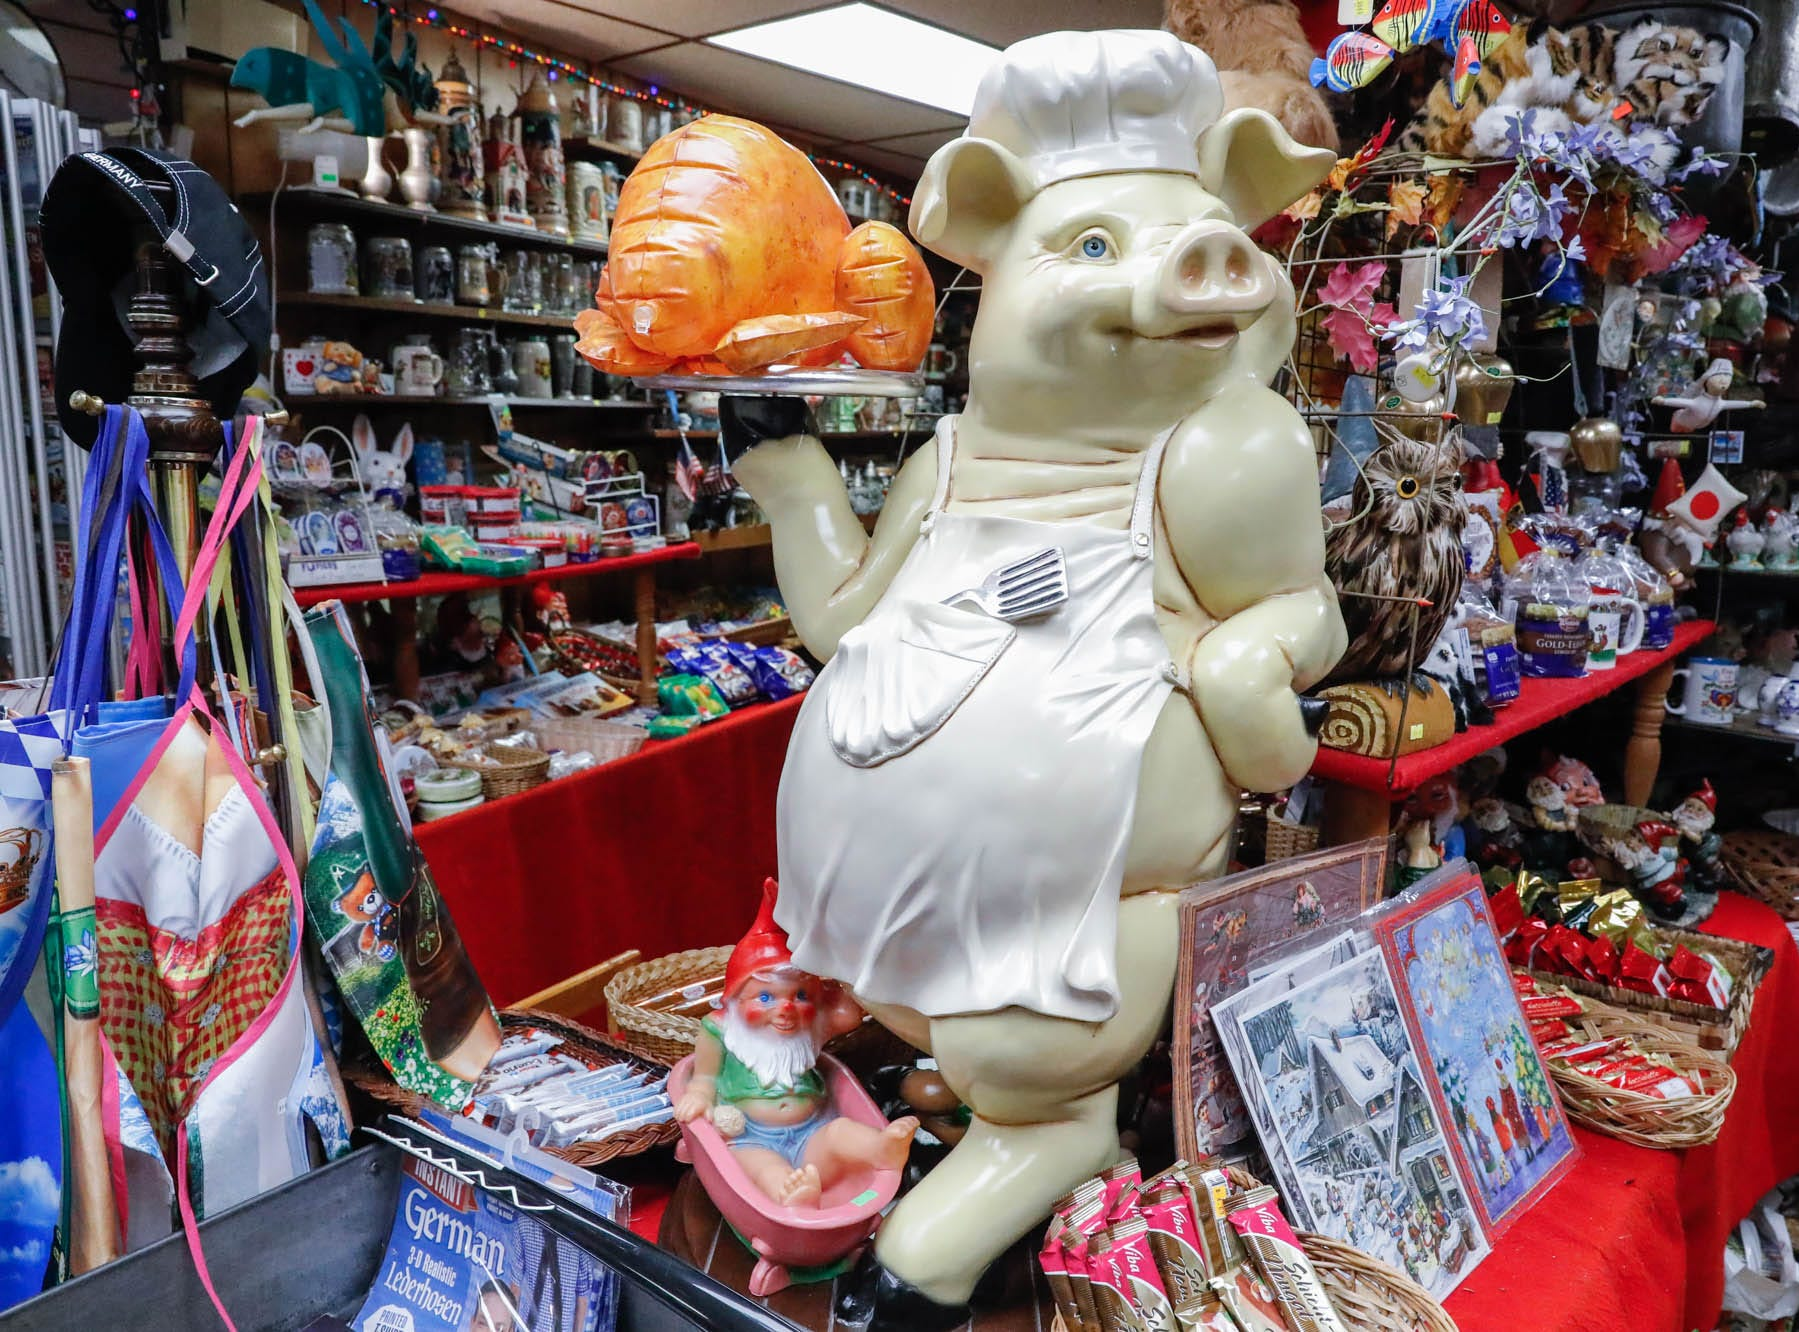 Heidelberg Haus Cafe and Bakery, 7625 Pendleton Pike, Indianapolis Ind., on Saturday, Dec. 8th, 2018. The cafe, bakery, and German grocery is well known for its extensive collection of German Kitsch.